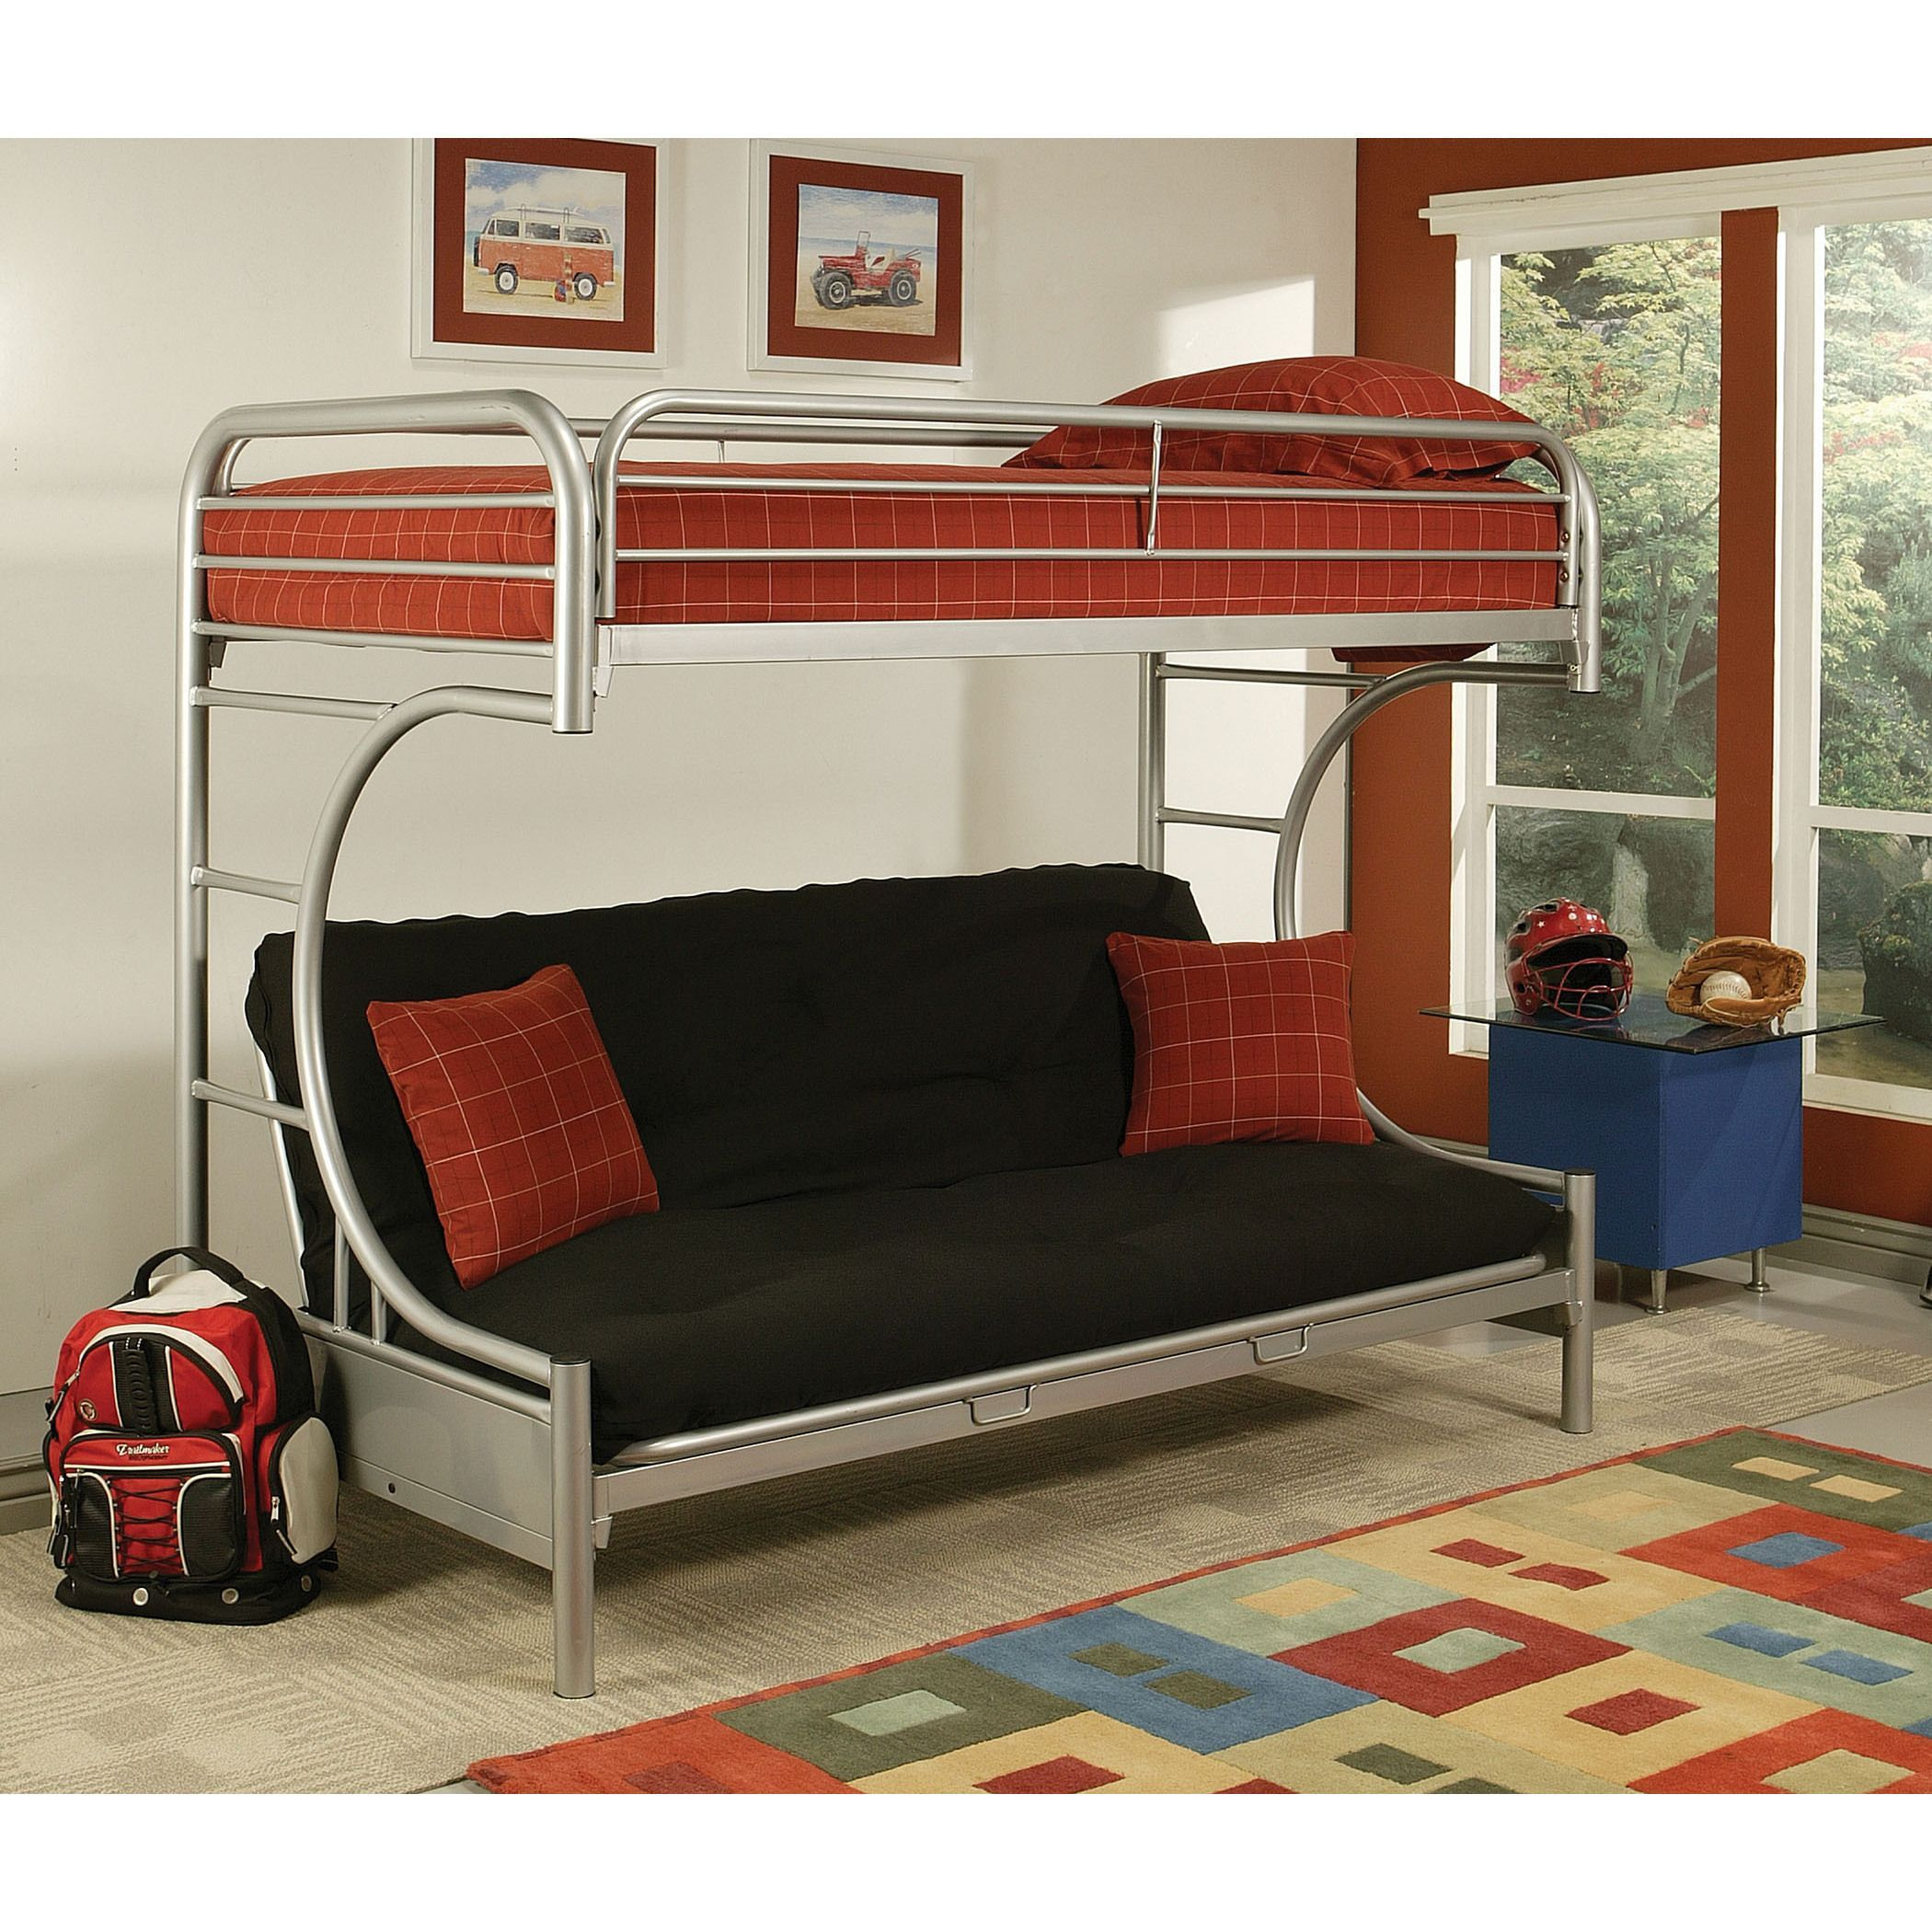 Loft bed with desk queen  Gaming Desks  Queen futon Futon bunk bed and Twin xl